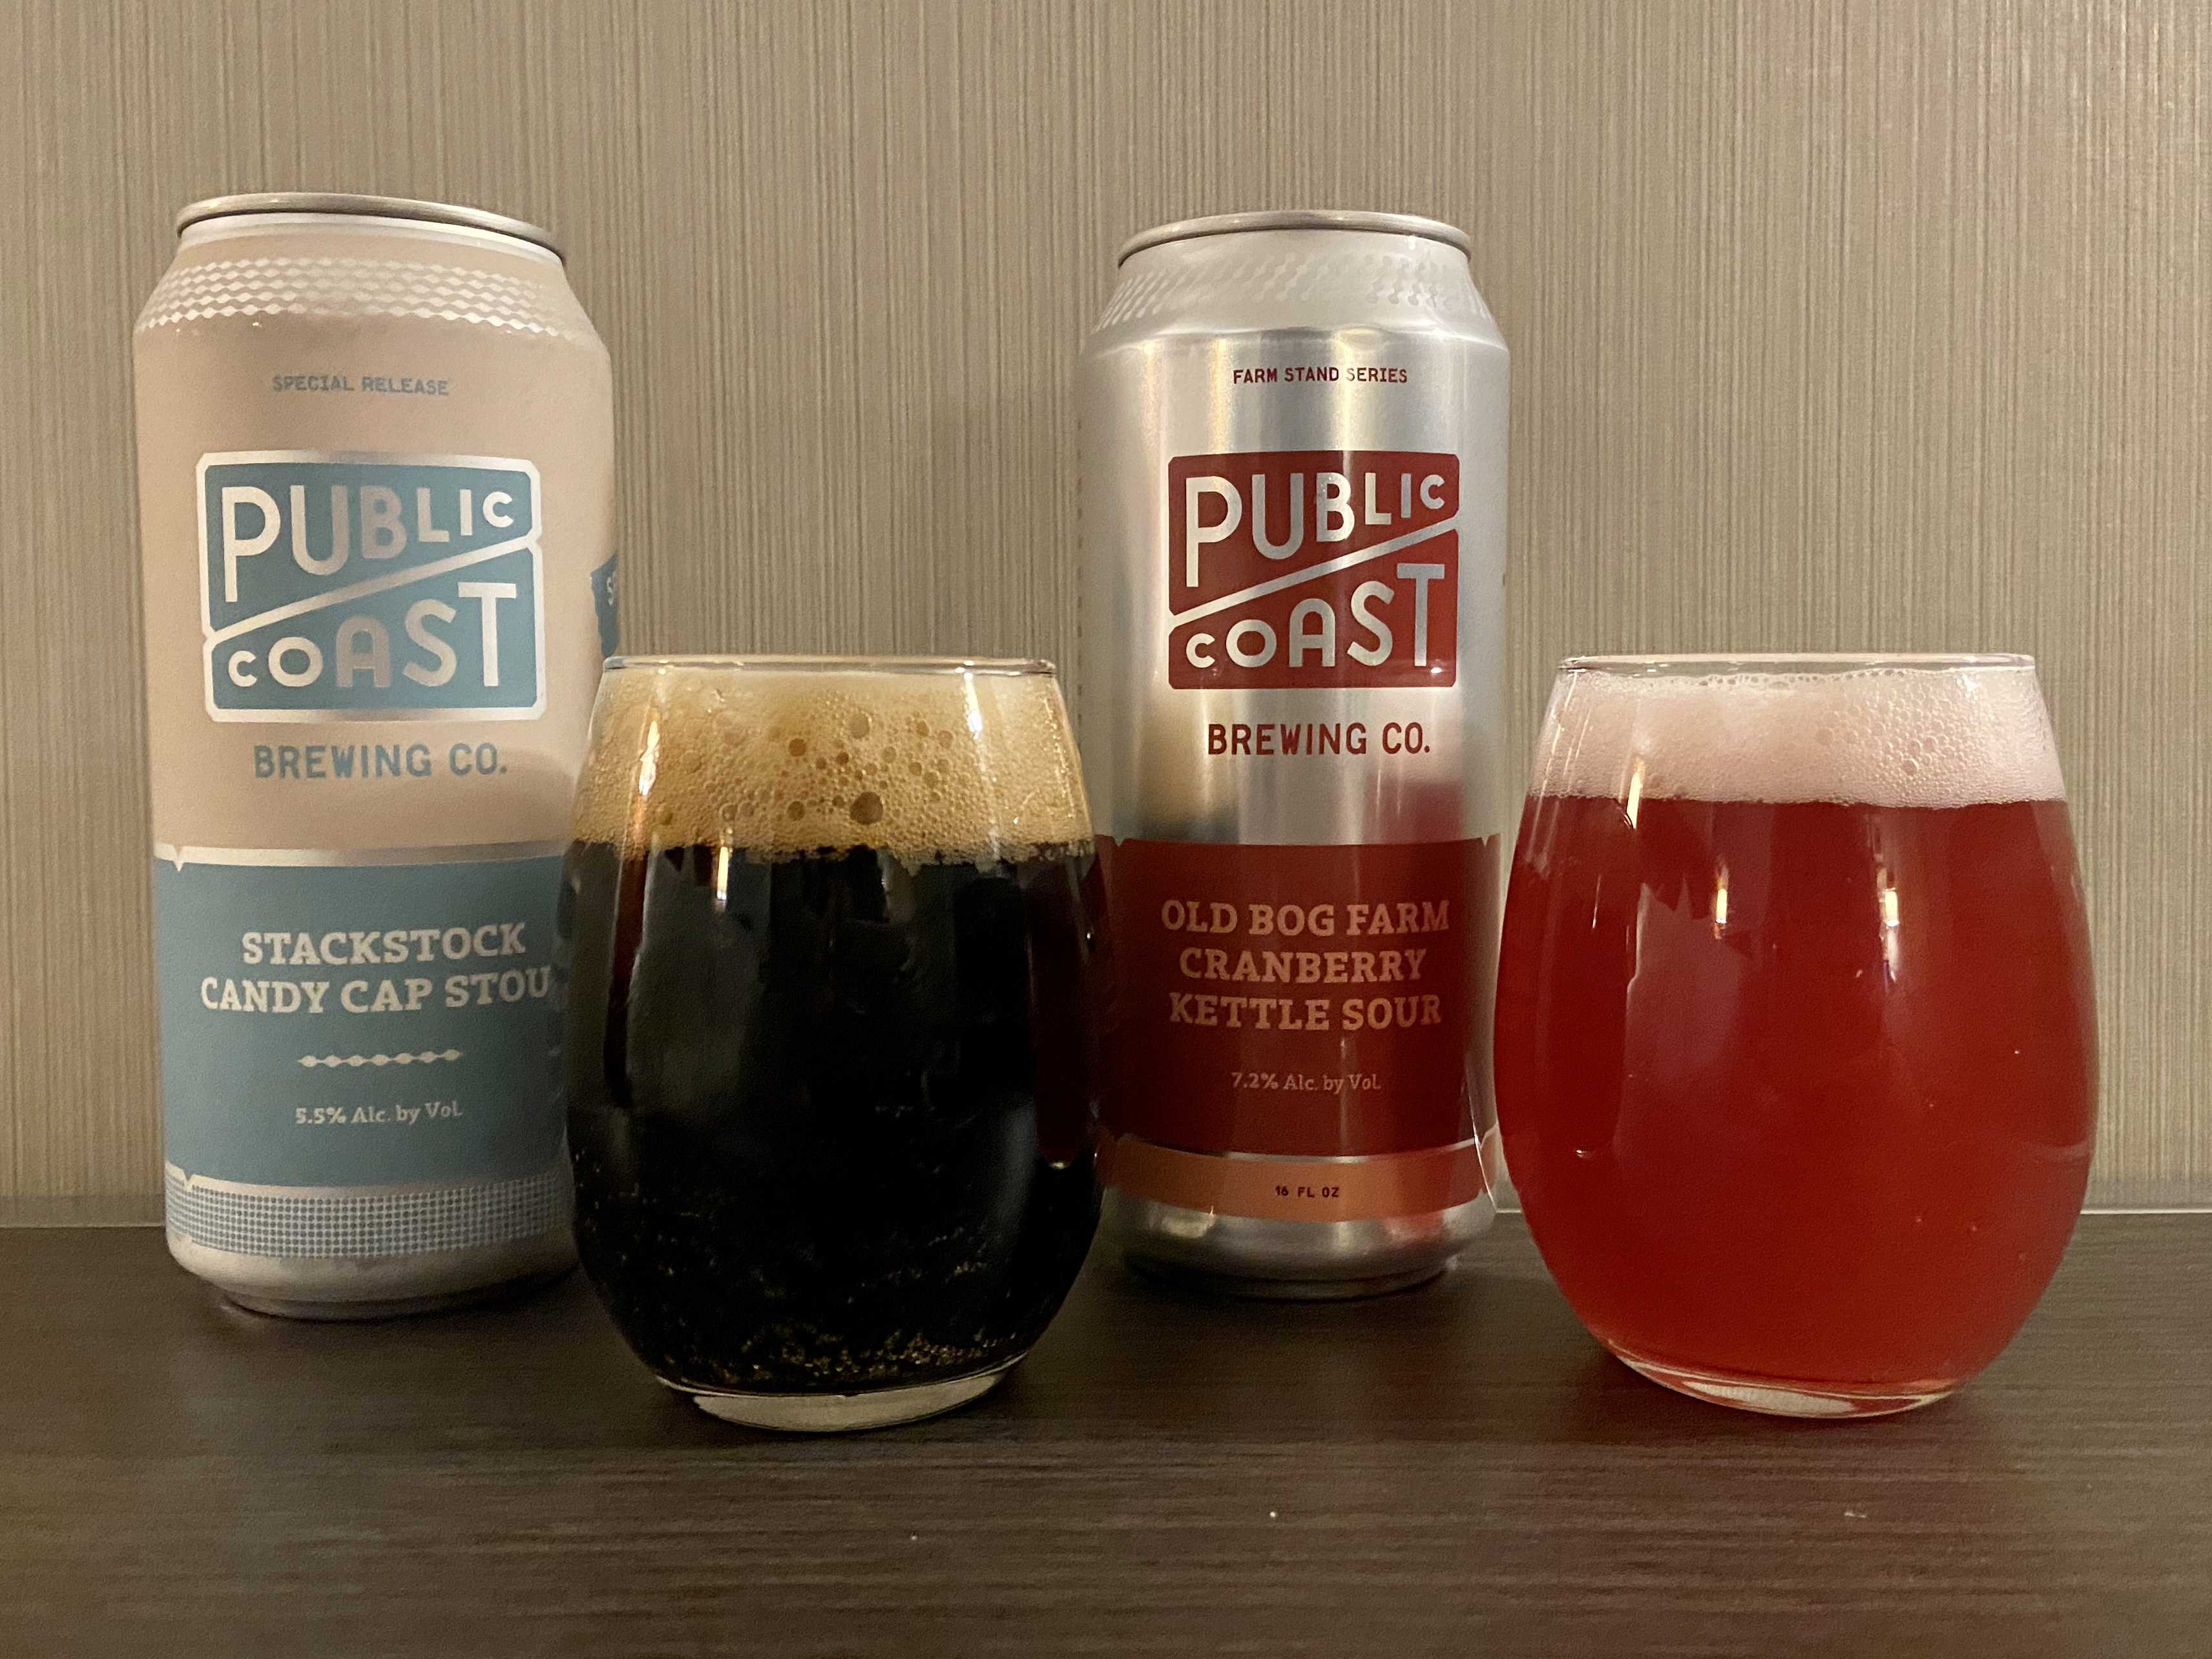 Public Coast Brewing StackStock Candy Cap Stout and Old Bog Farm Cranberry Kettle Sour.